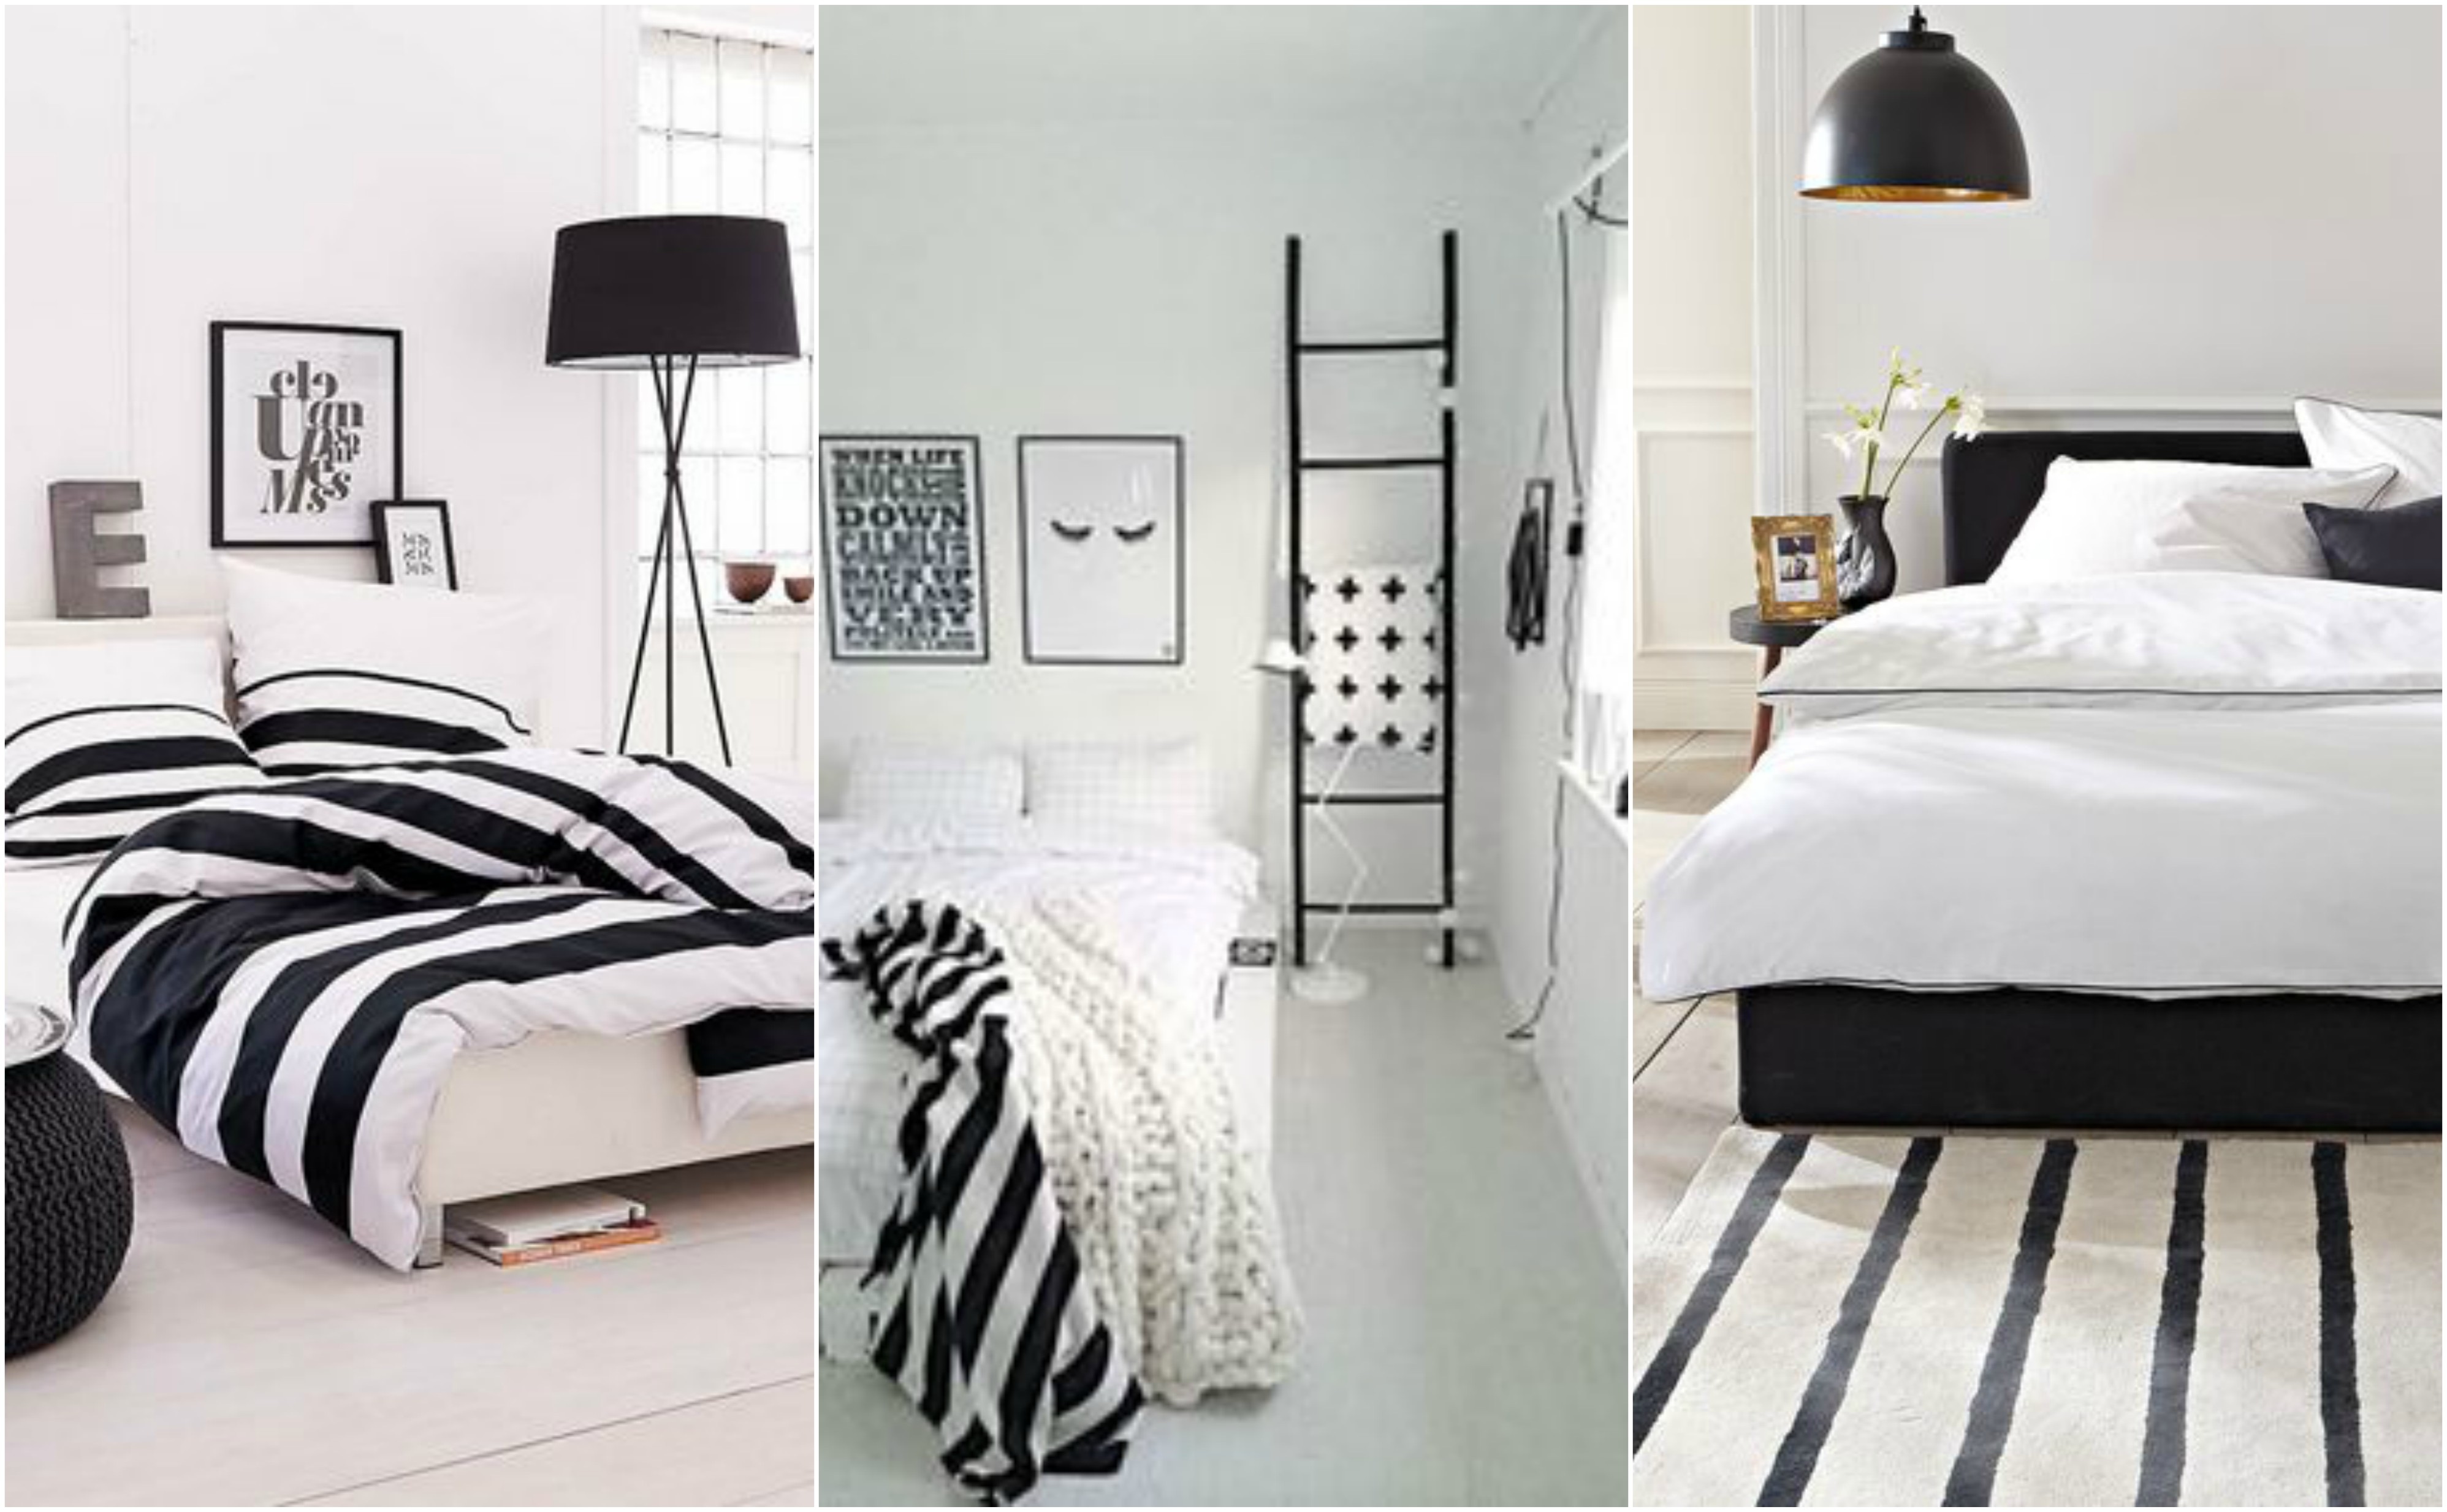 decoracao-quarto-preto-branco.jpg